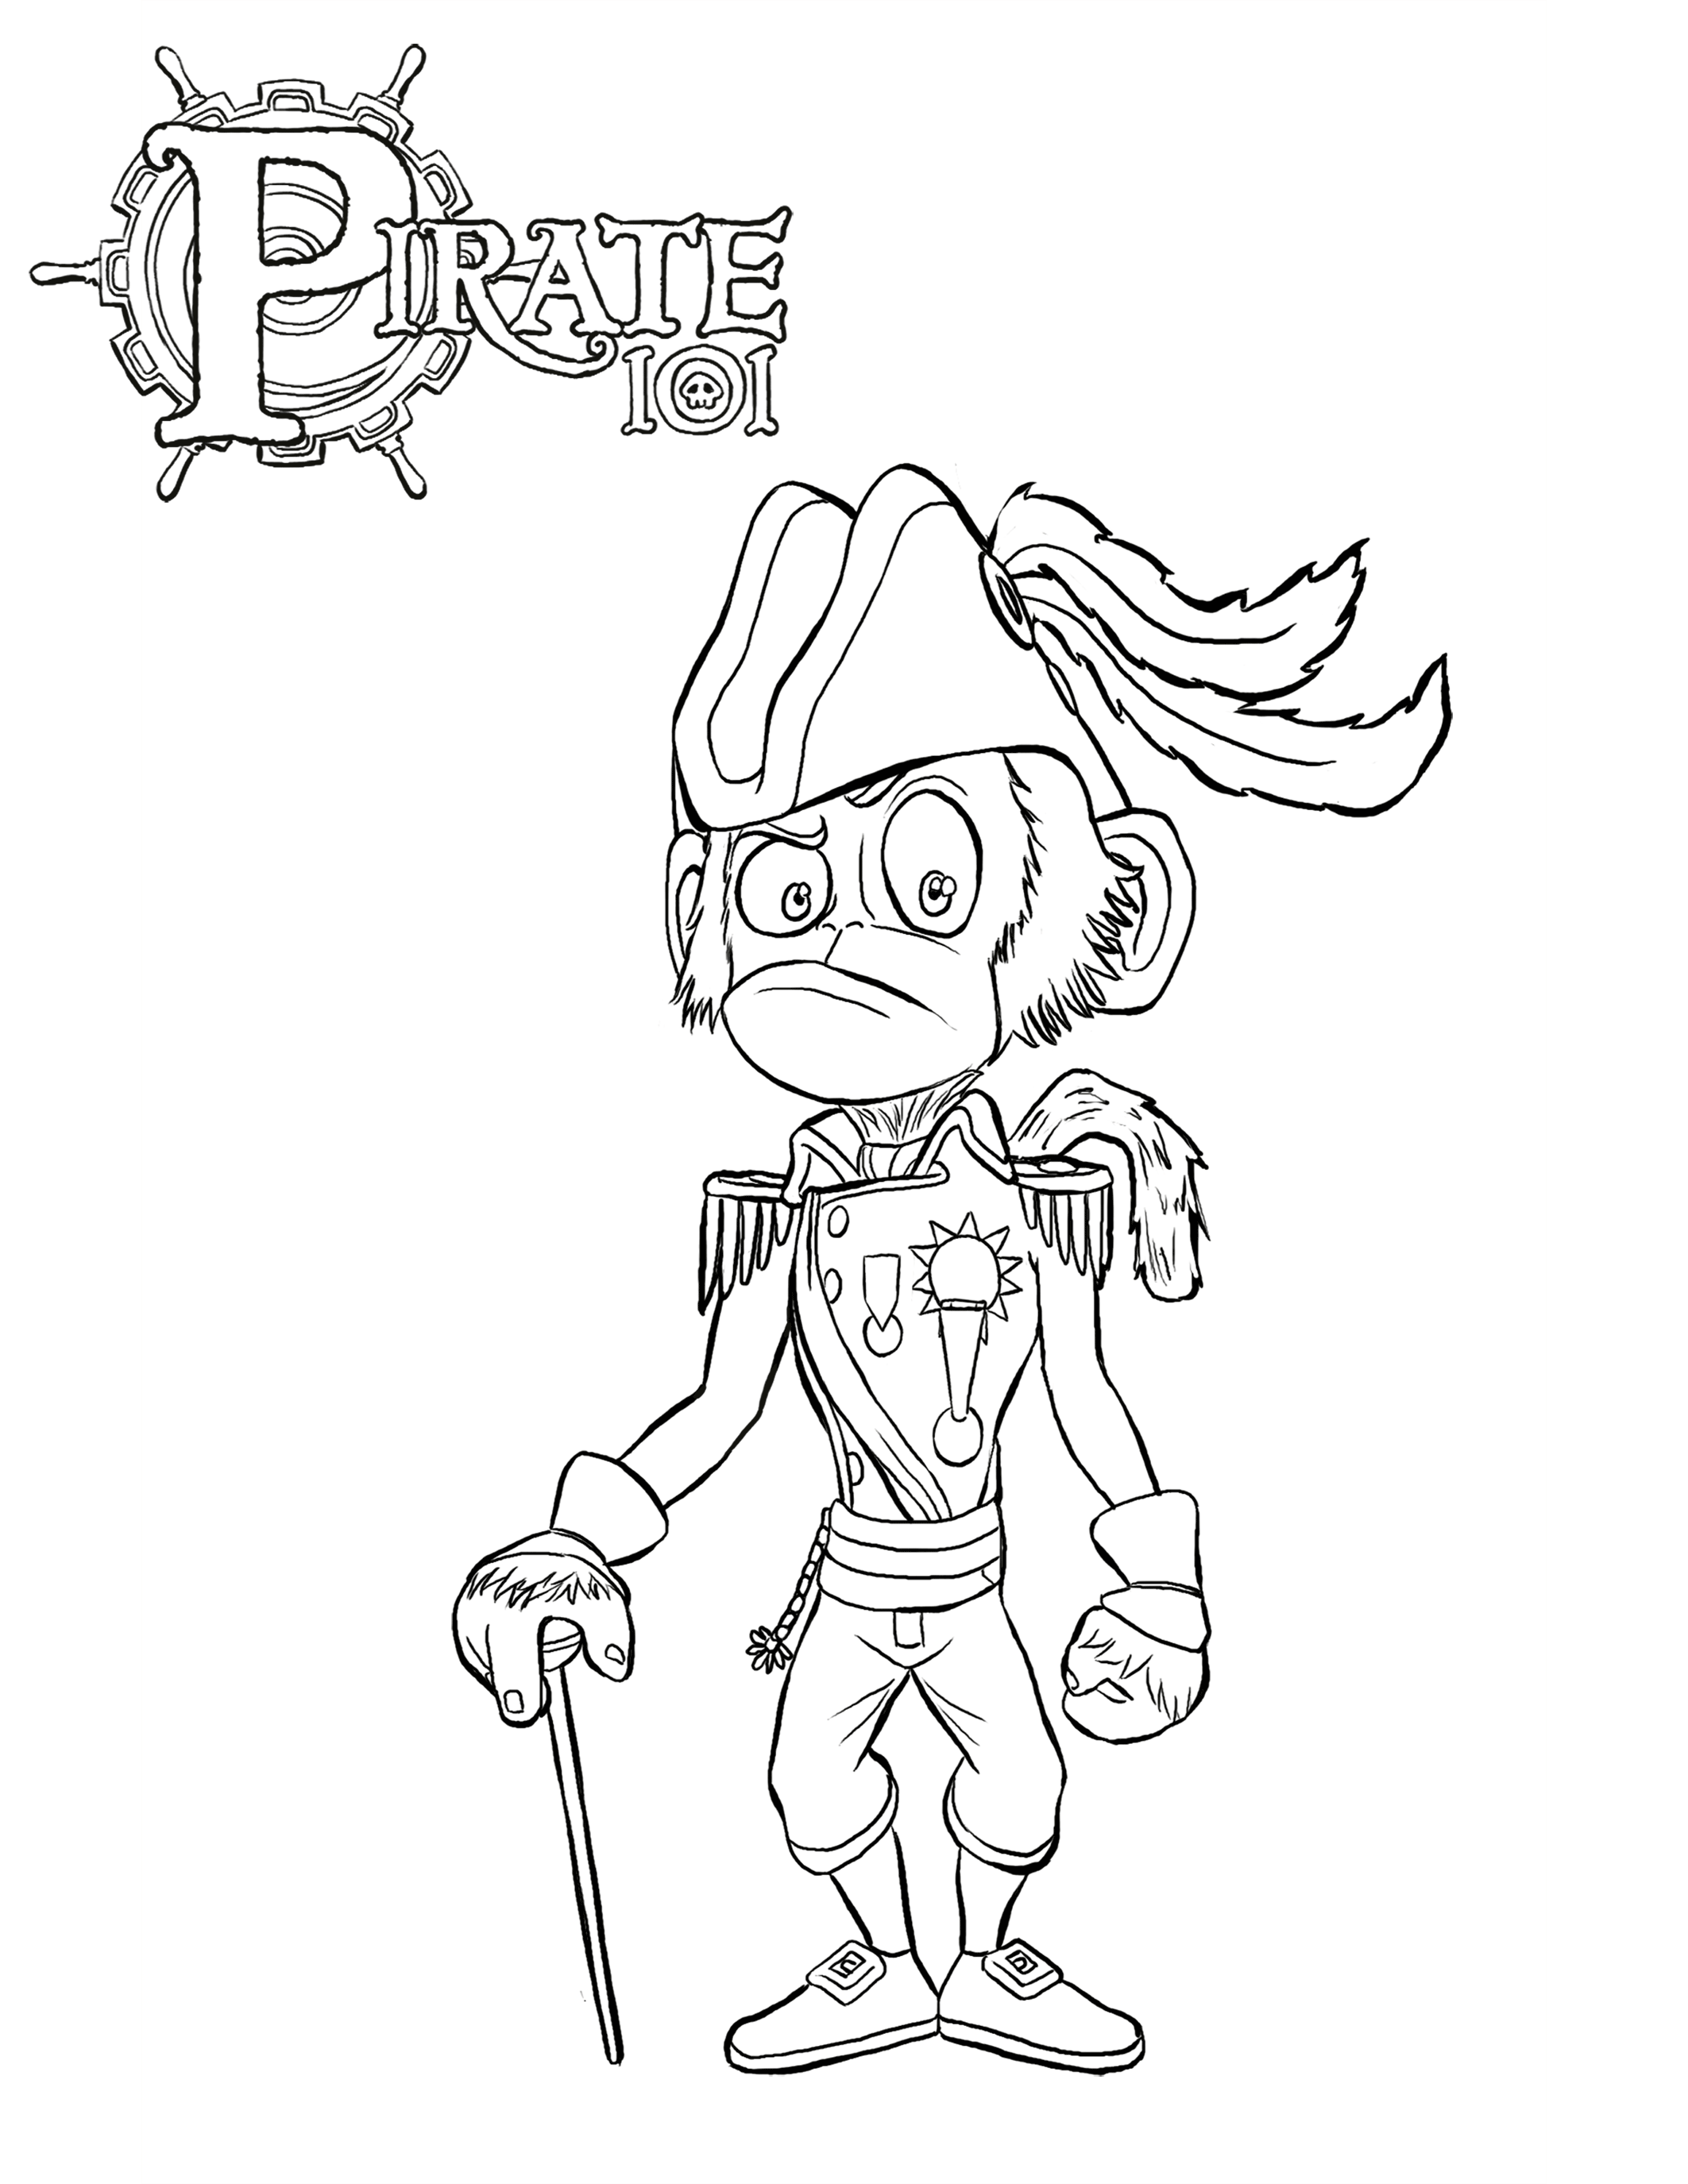 Coloring Pages Pirate Color Page pirate coloring pages pirate101 free online game download mr gandry page